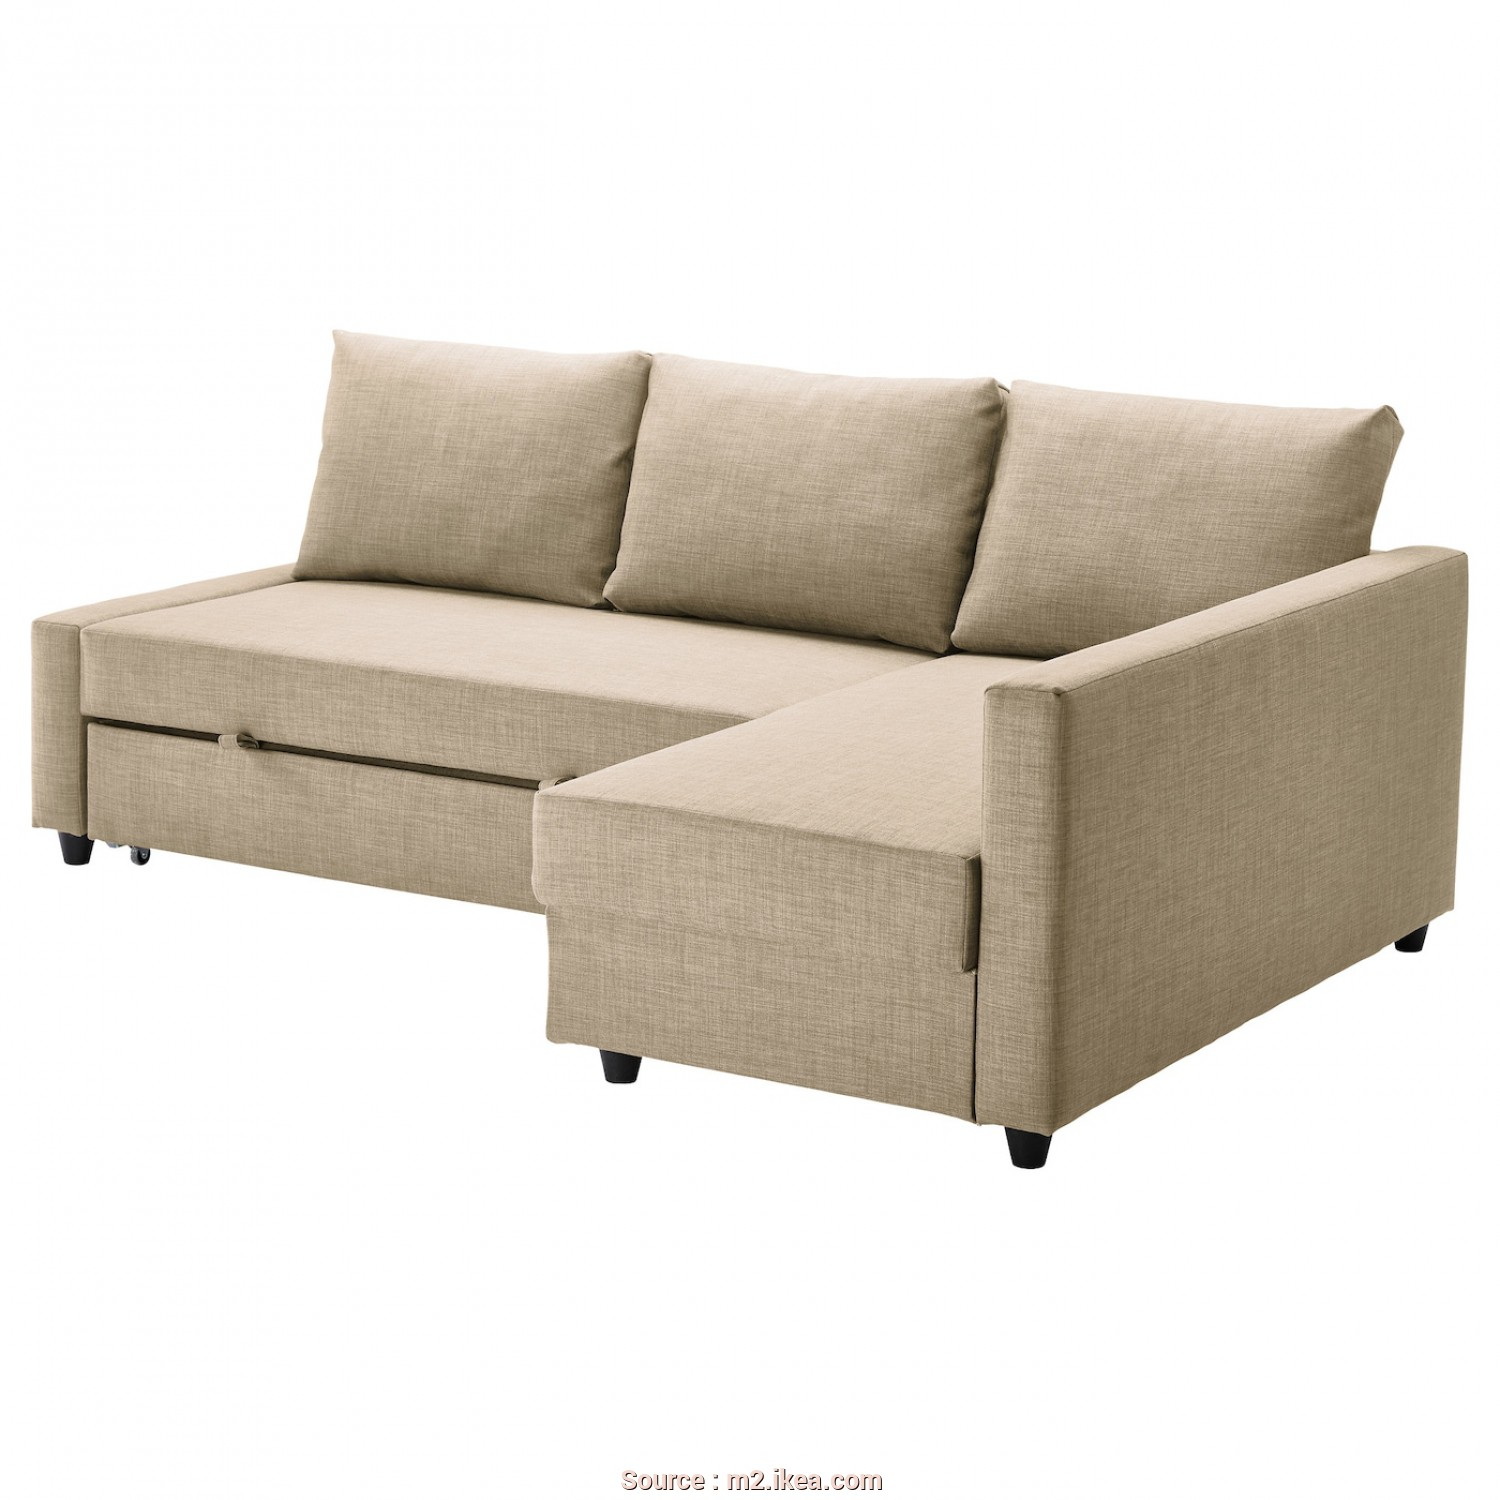 Ikea Vilasund Or Friheten, Incredibile Corner Sofa-Bed With Storage FRIHETEN Skiftebo Beige